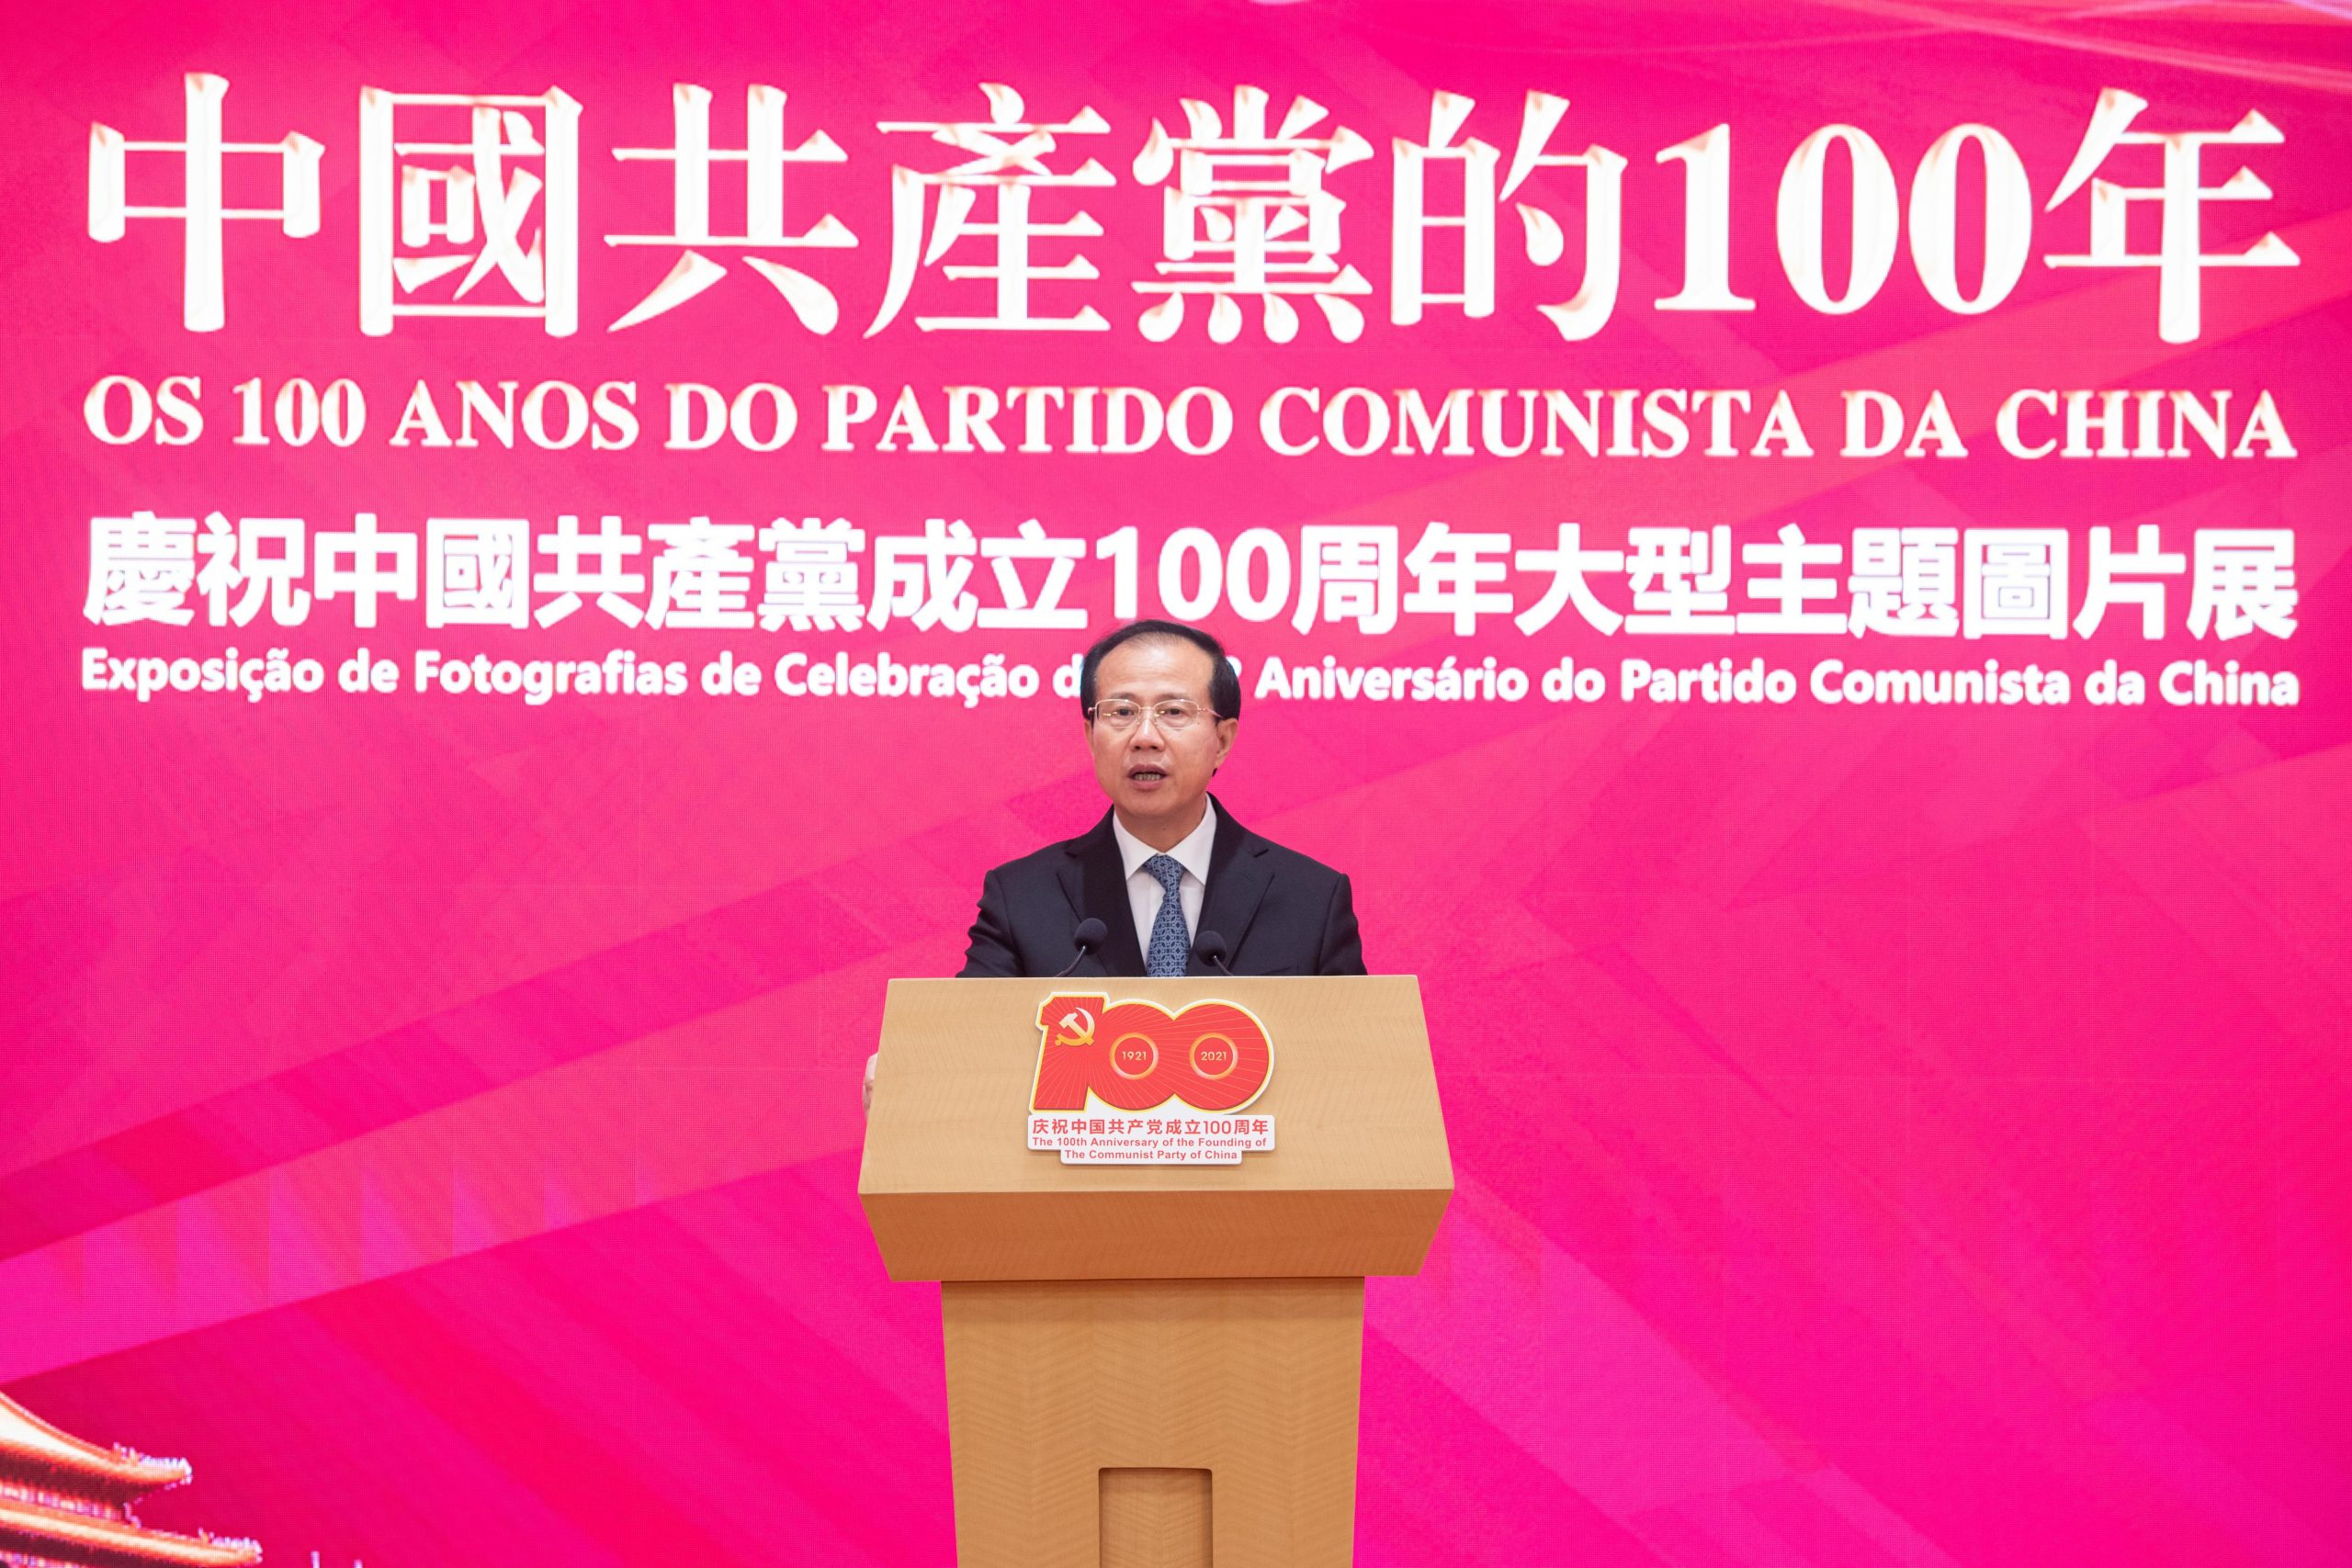 Director of the Liaison Office of the Central People's Government in the Macao SAR Fu Ziying